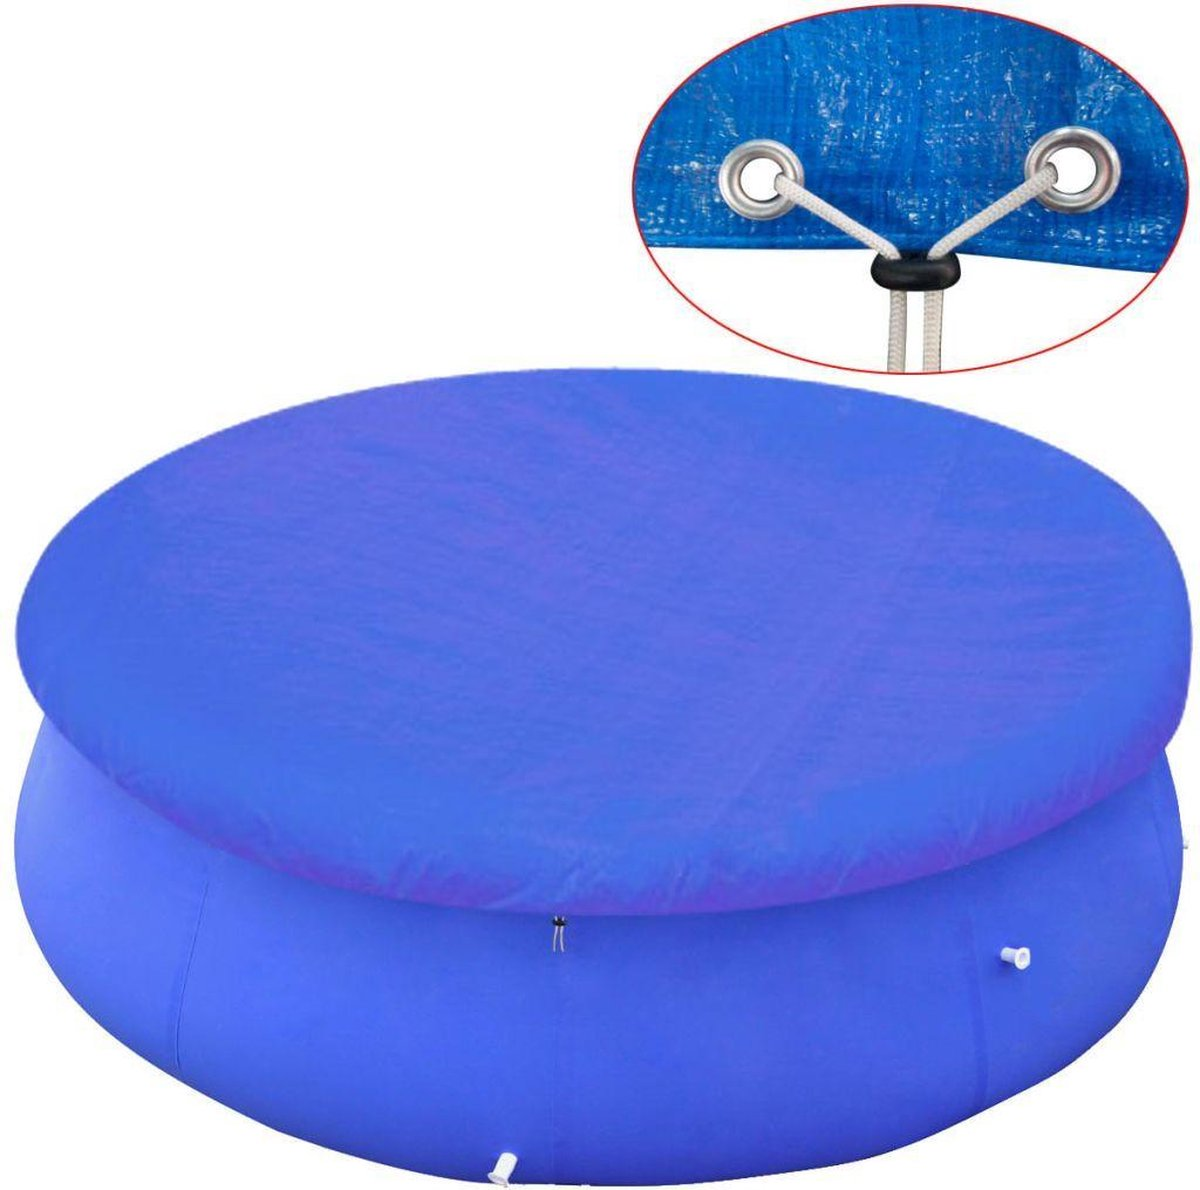 Zwembadhoes rond 90 g/m² 300 cm PE